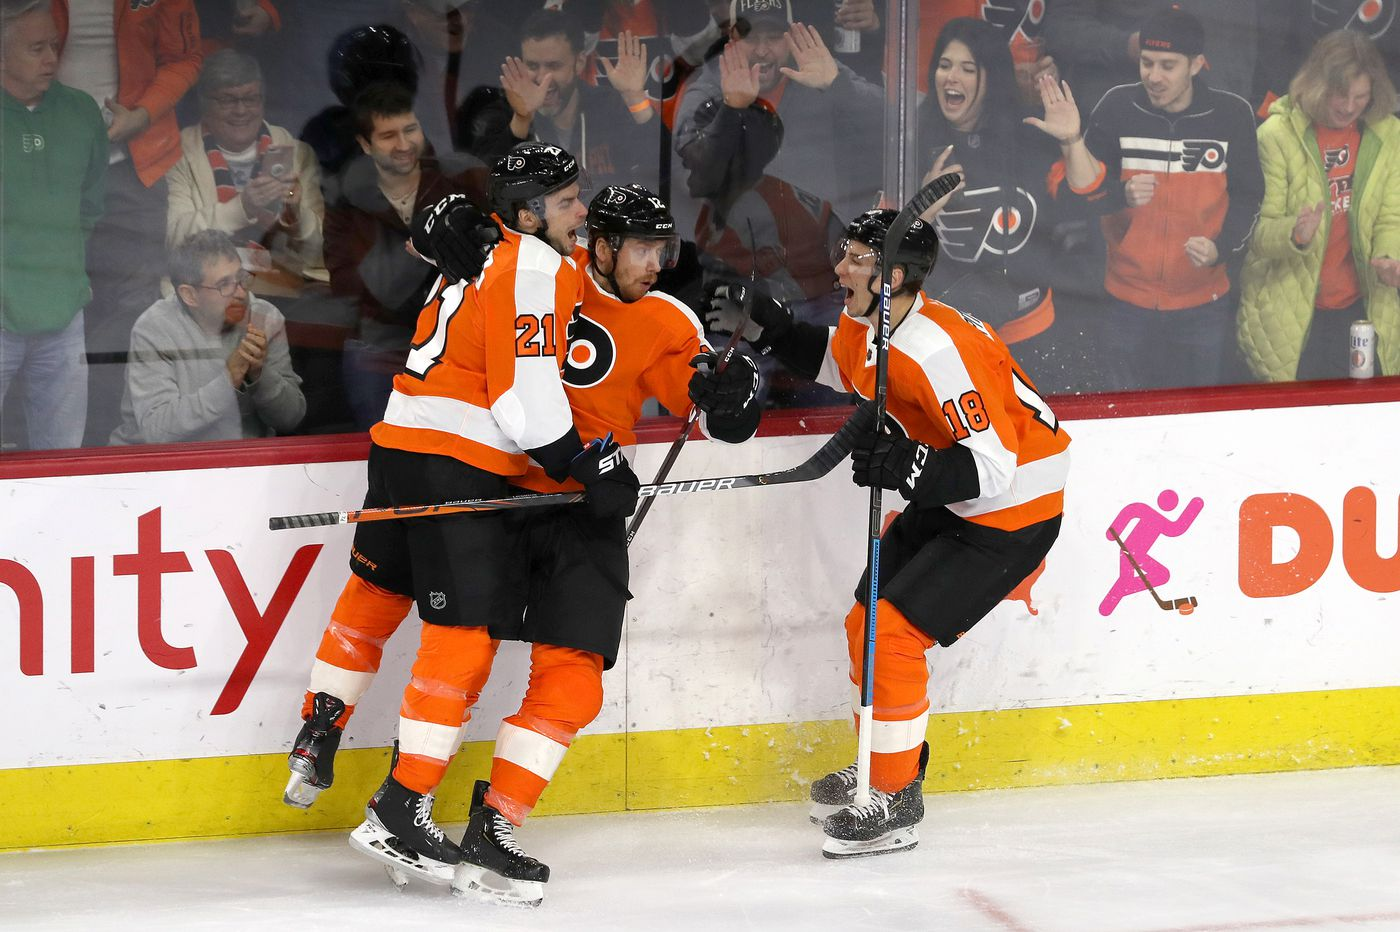 Forward depth, a famous horse, and other observations from the Flyers' 4-1 win over the Hurricanes | Mike Sielski